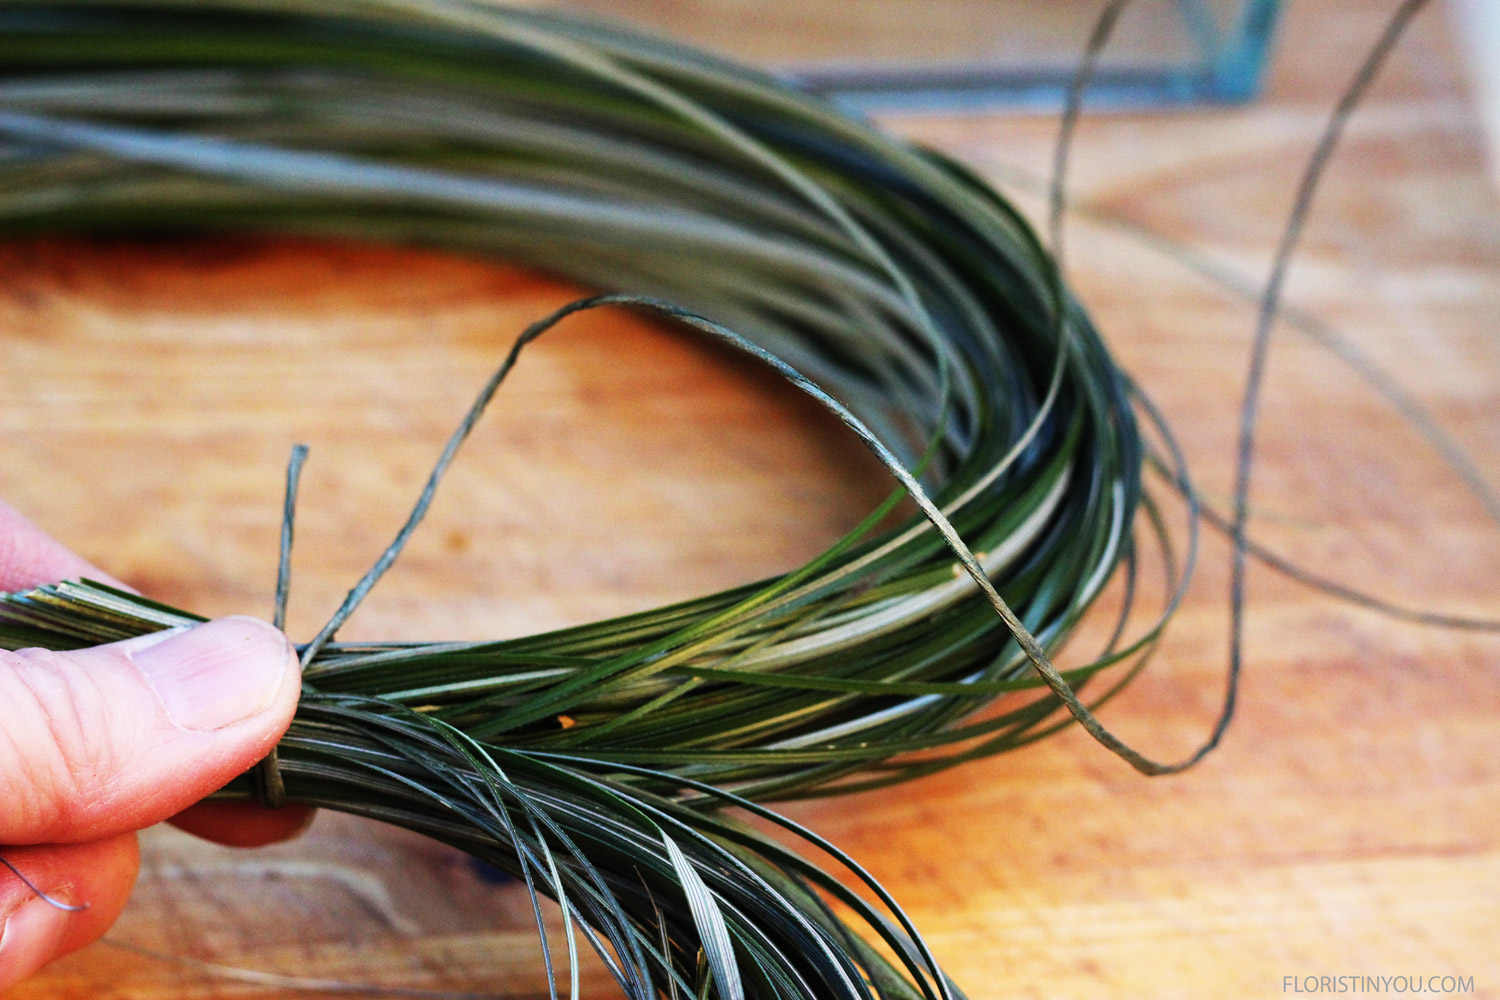 Bring tips grass into heart shape. Bind leaving 1.5 inch loose end. Wrap once. Pull tight and double knot. Wrap 3 more times. Pull tight. Double knot. Wrap ends around. Trim ends grass.